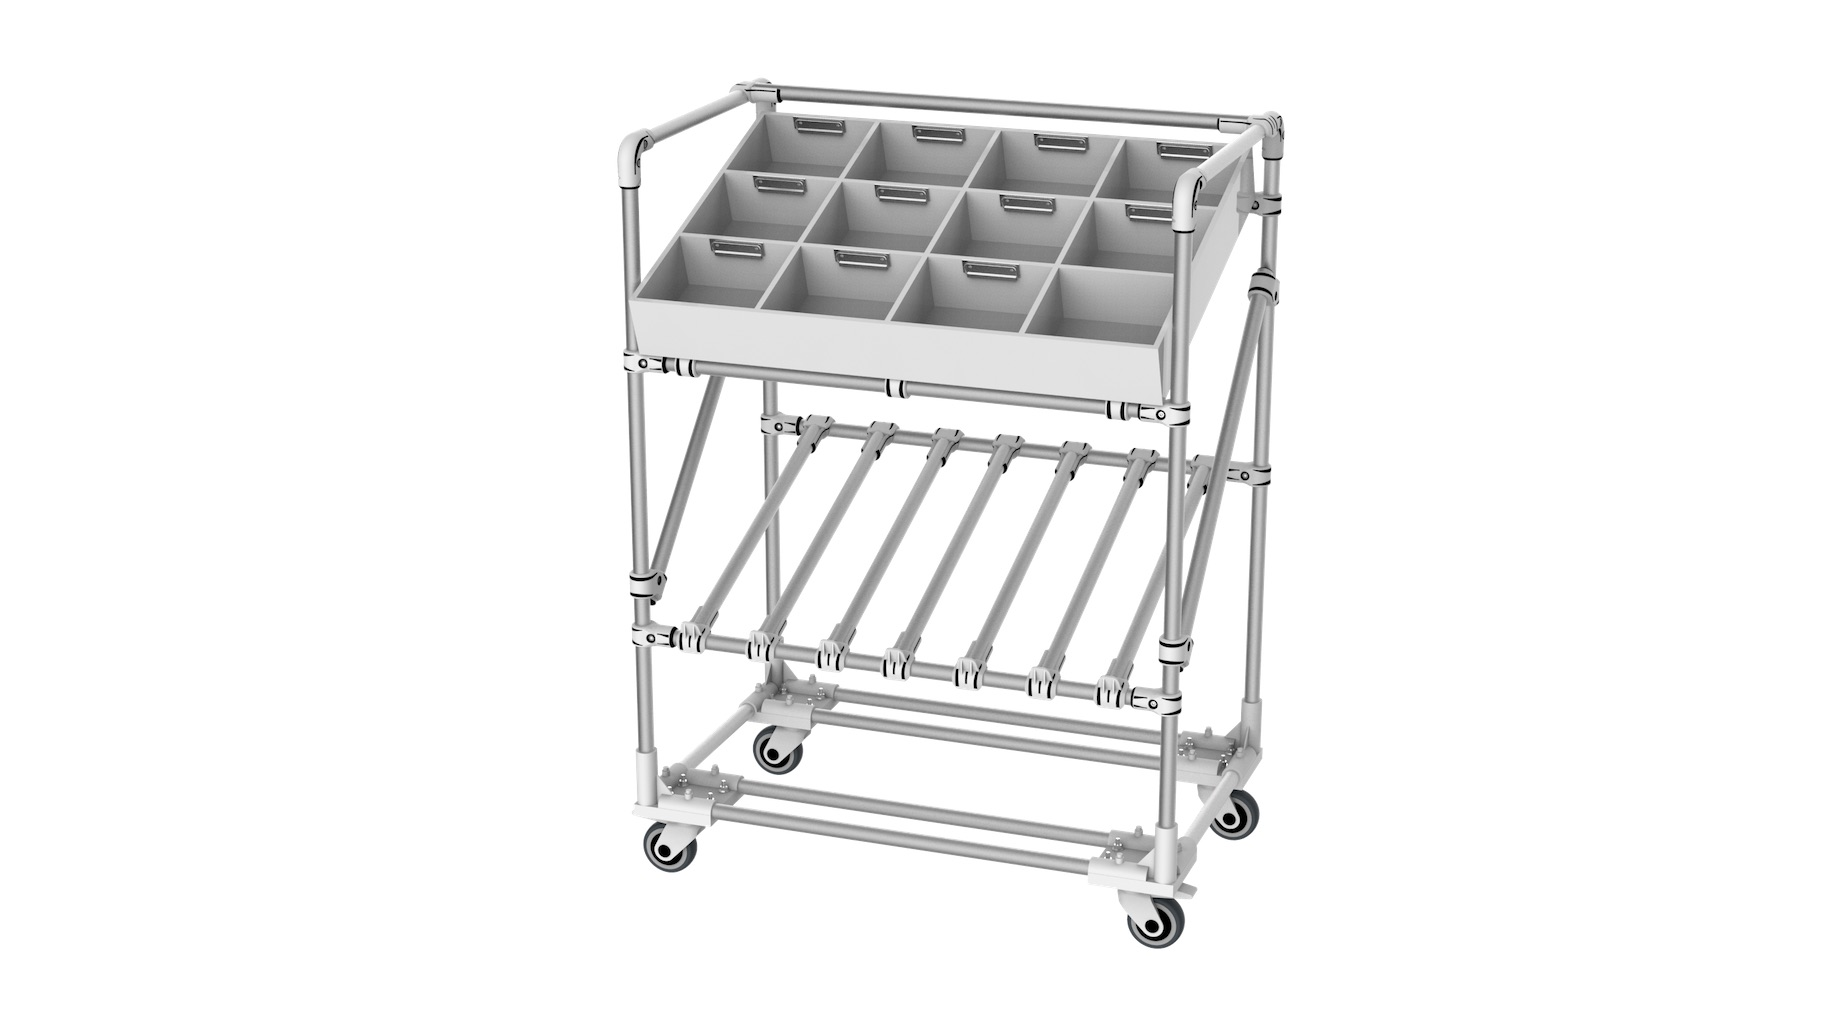 Retail - Trolley for preparing orders for jewelry and other small items